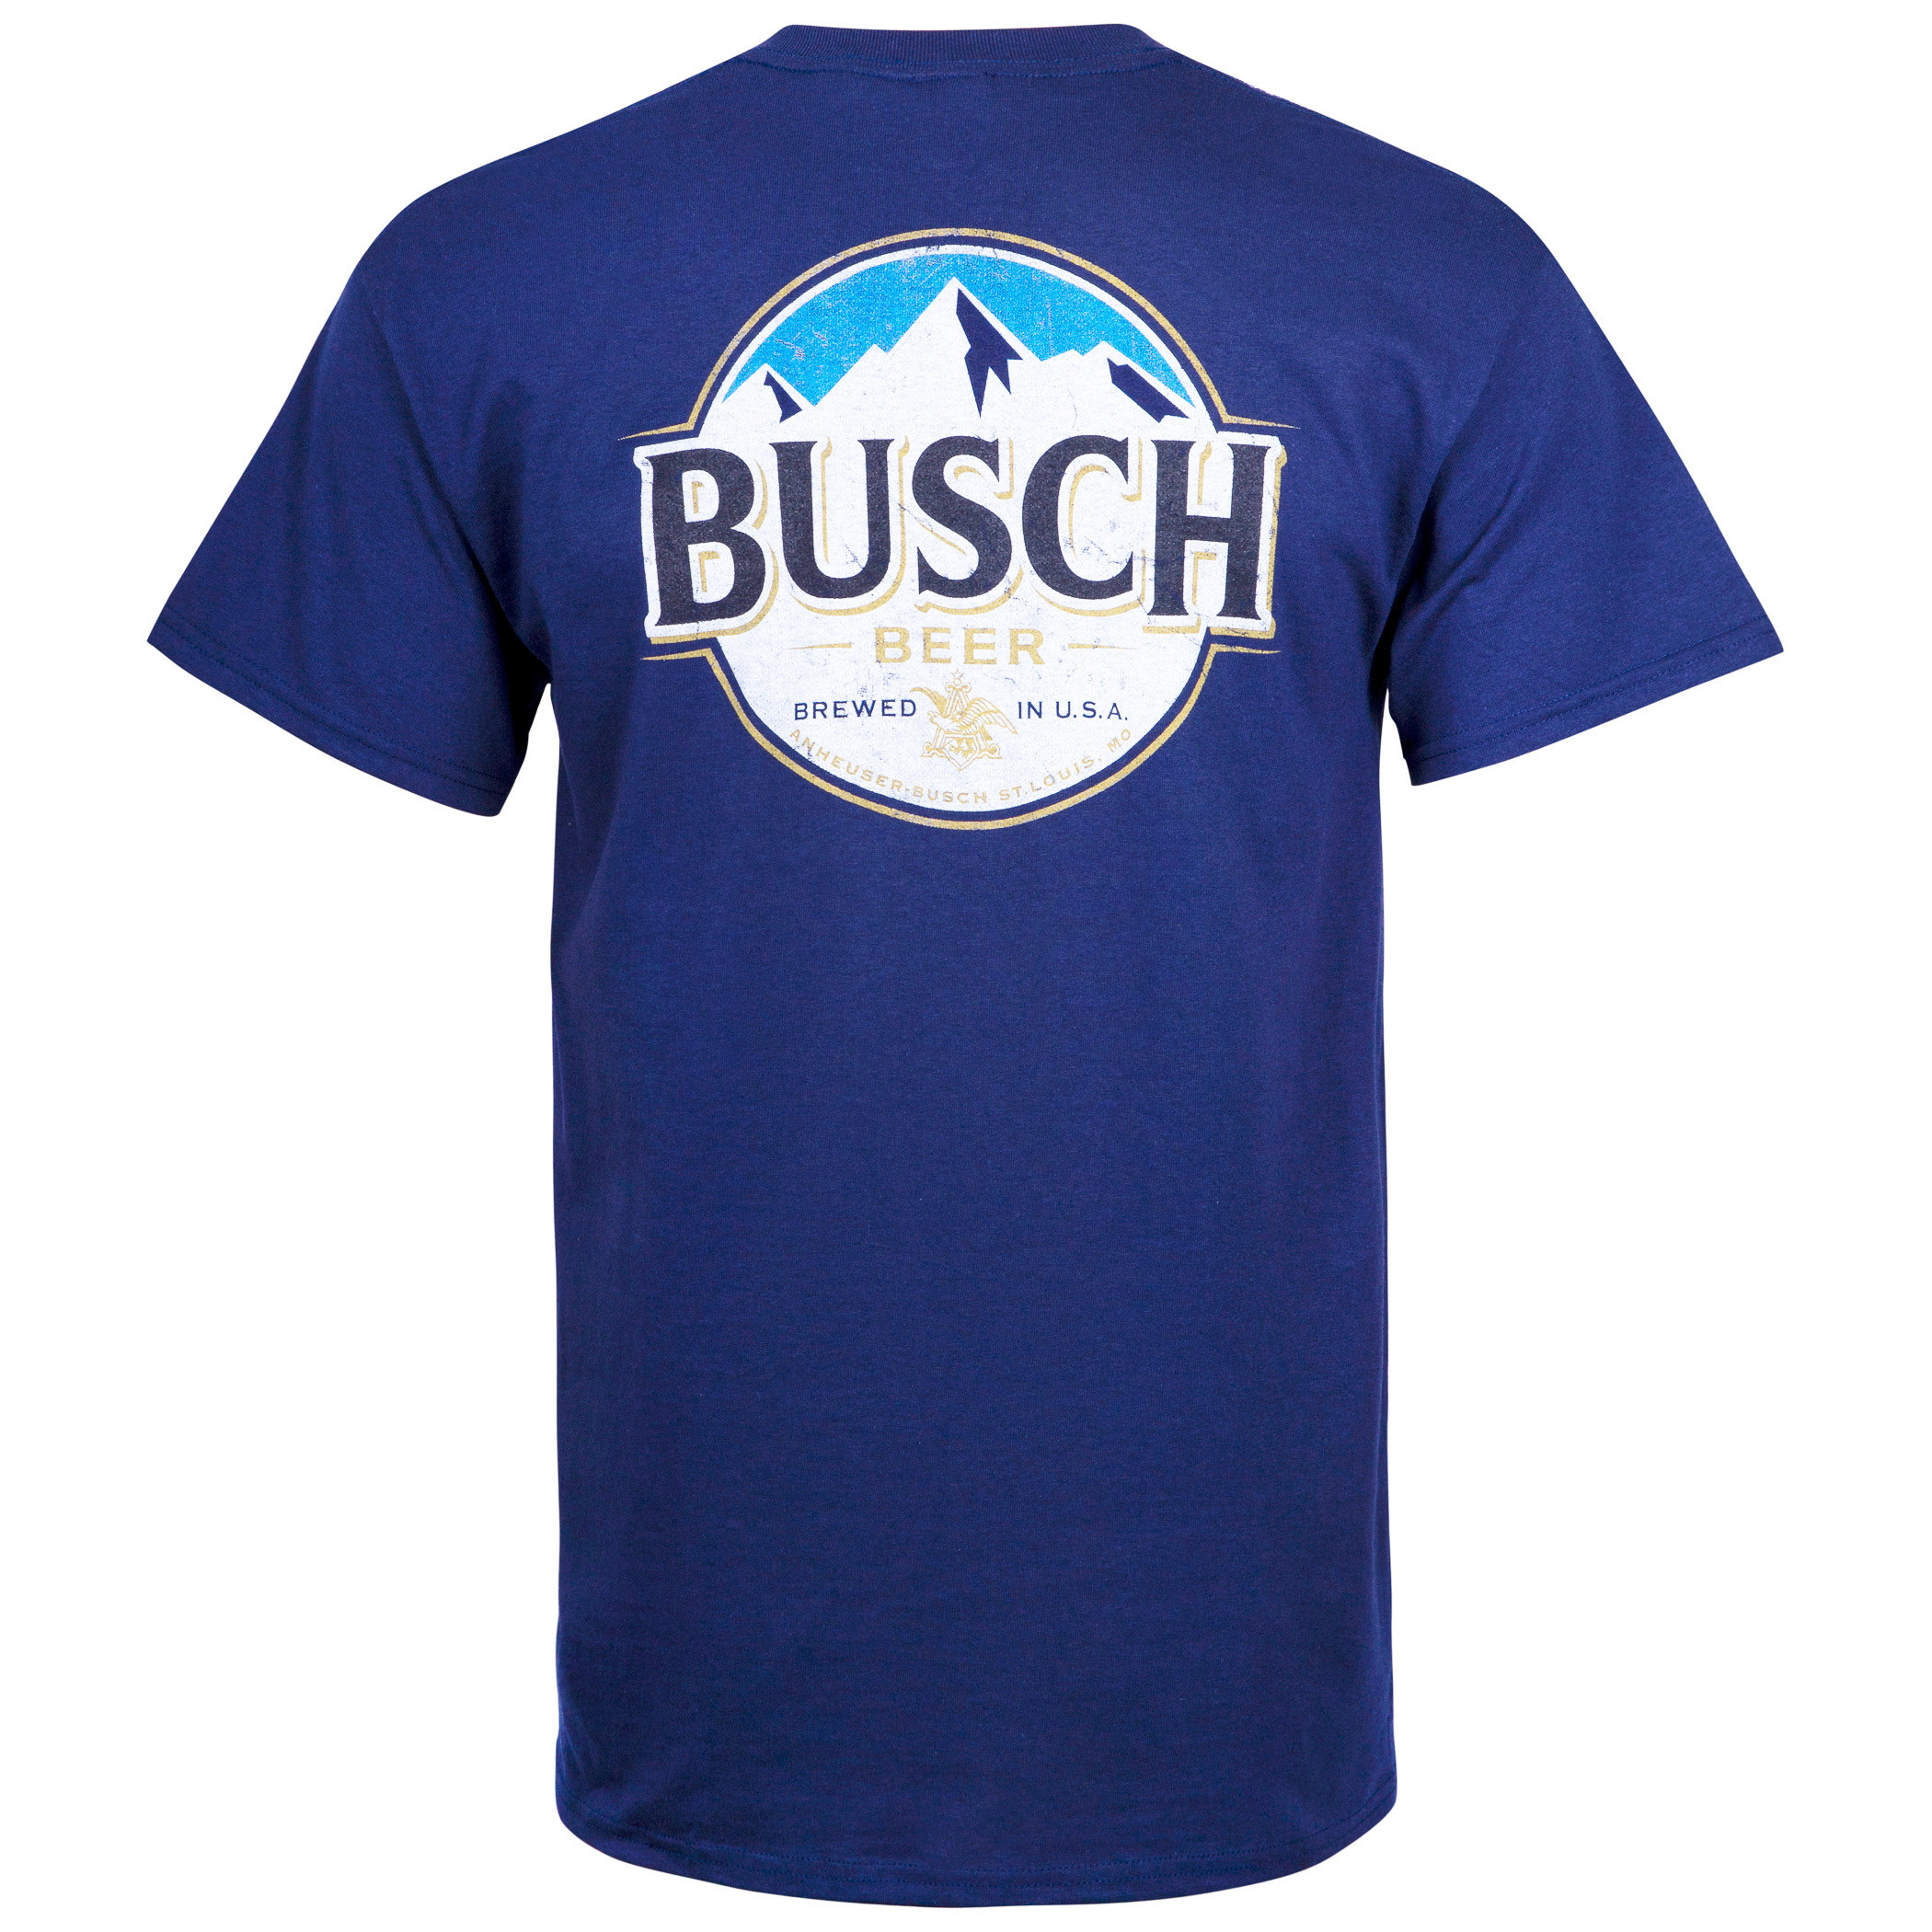 Busch Front And Back Print Blue Pocket Tee Shirt